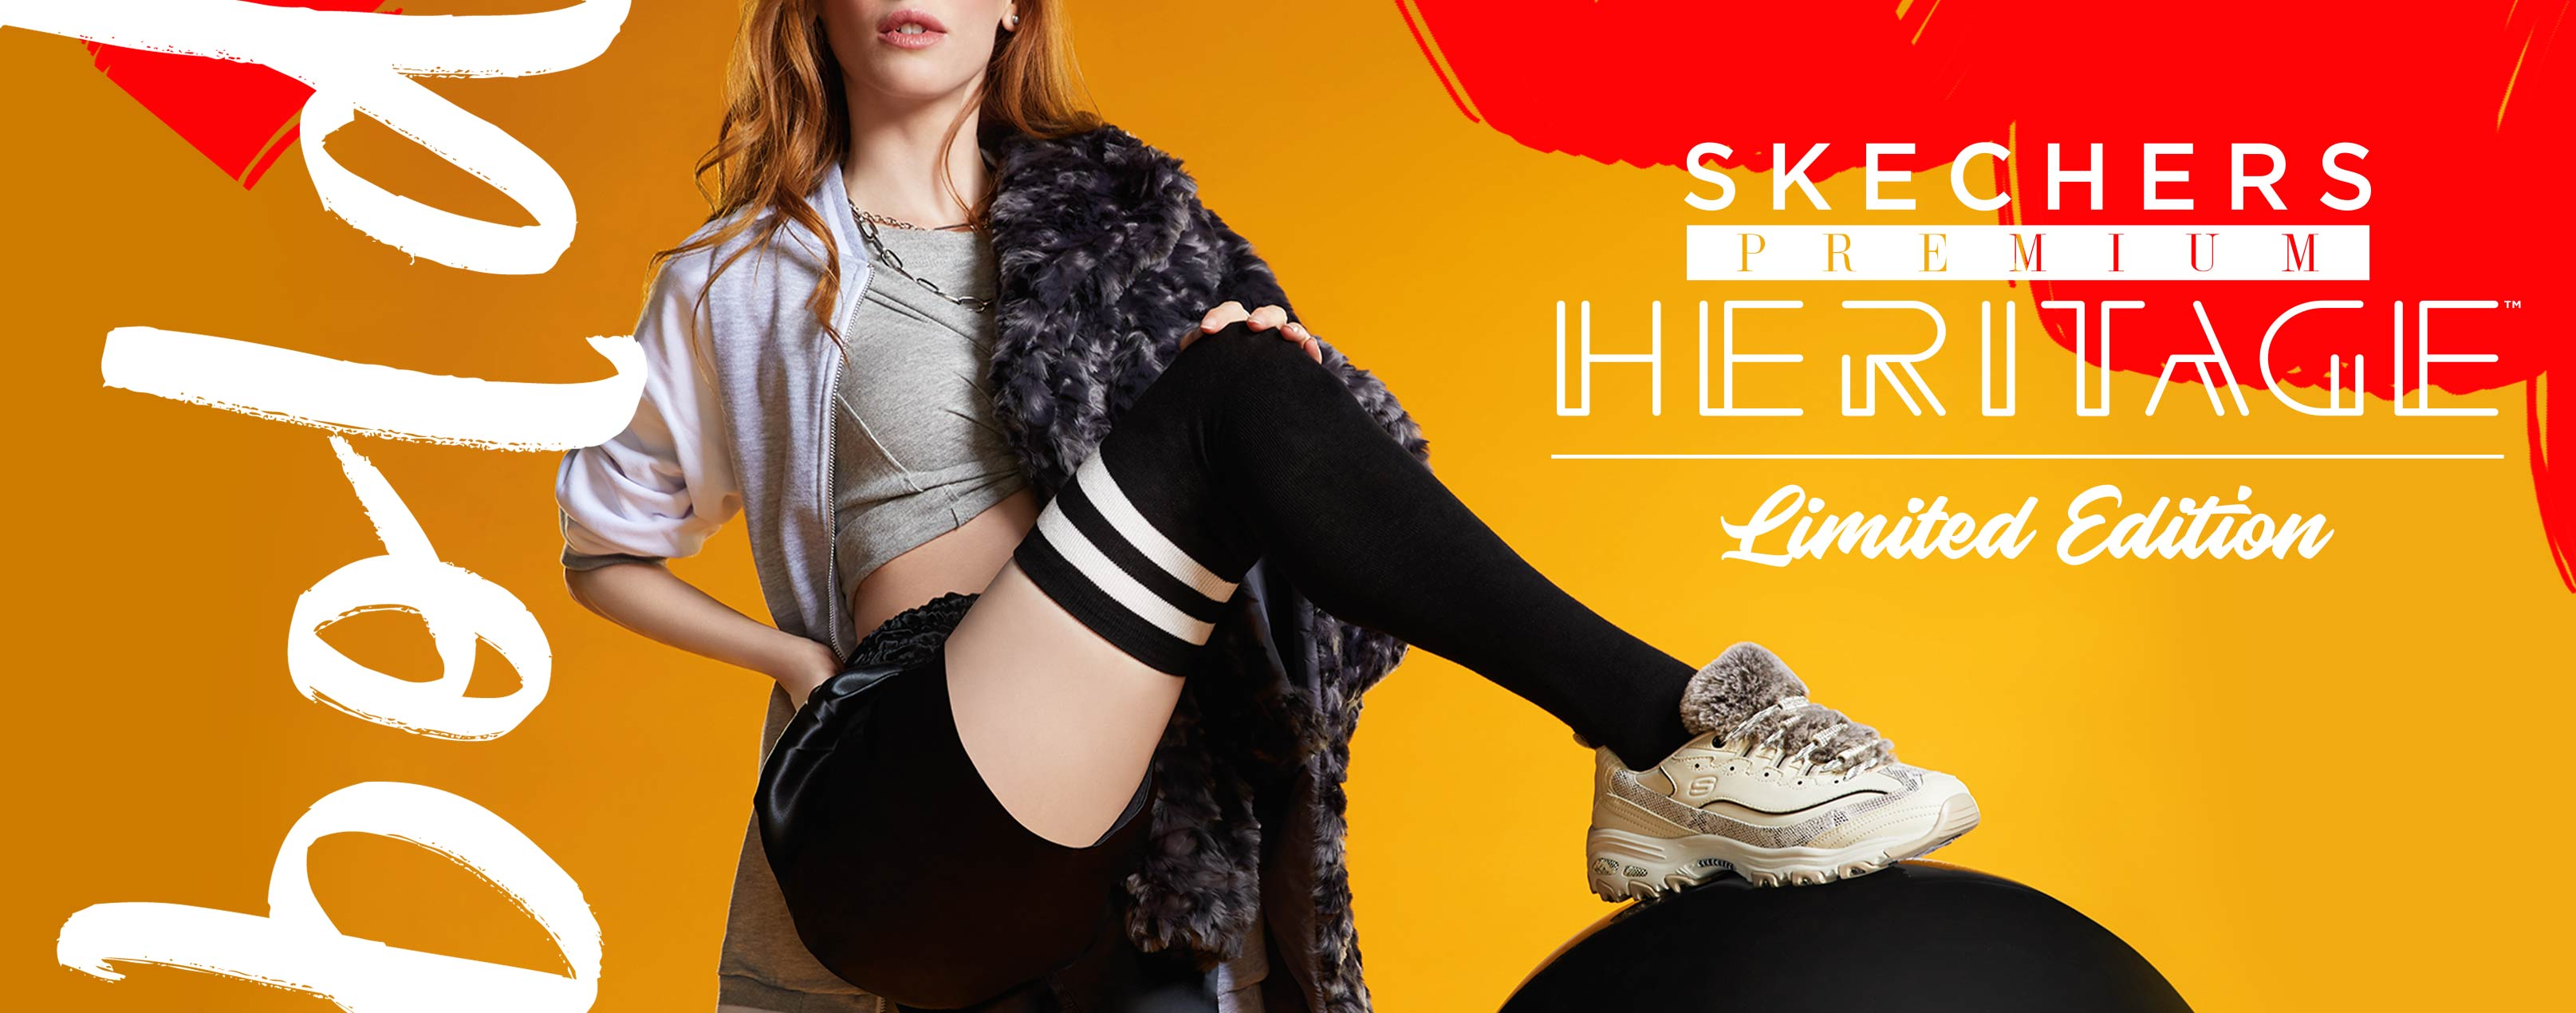 An exclusive limited-edition collection celebrating some of the most iconic styles in Skechers history!